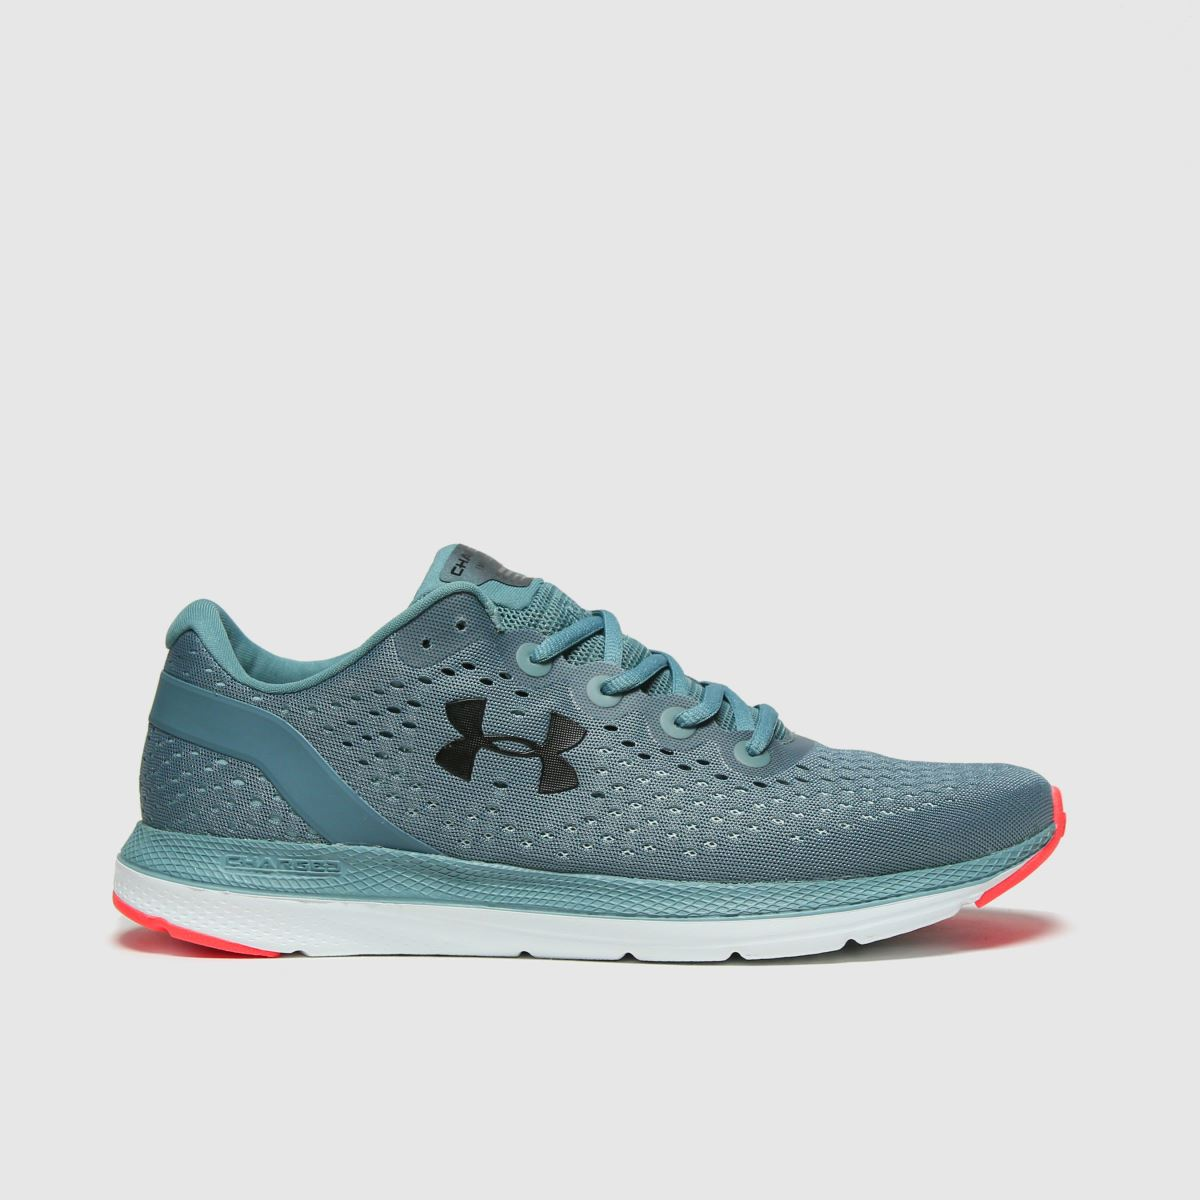 Under Armour Pale Blue Charged Impulse Trainers